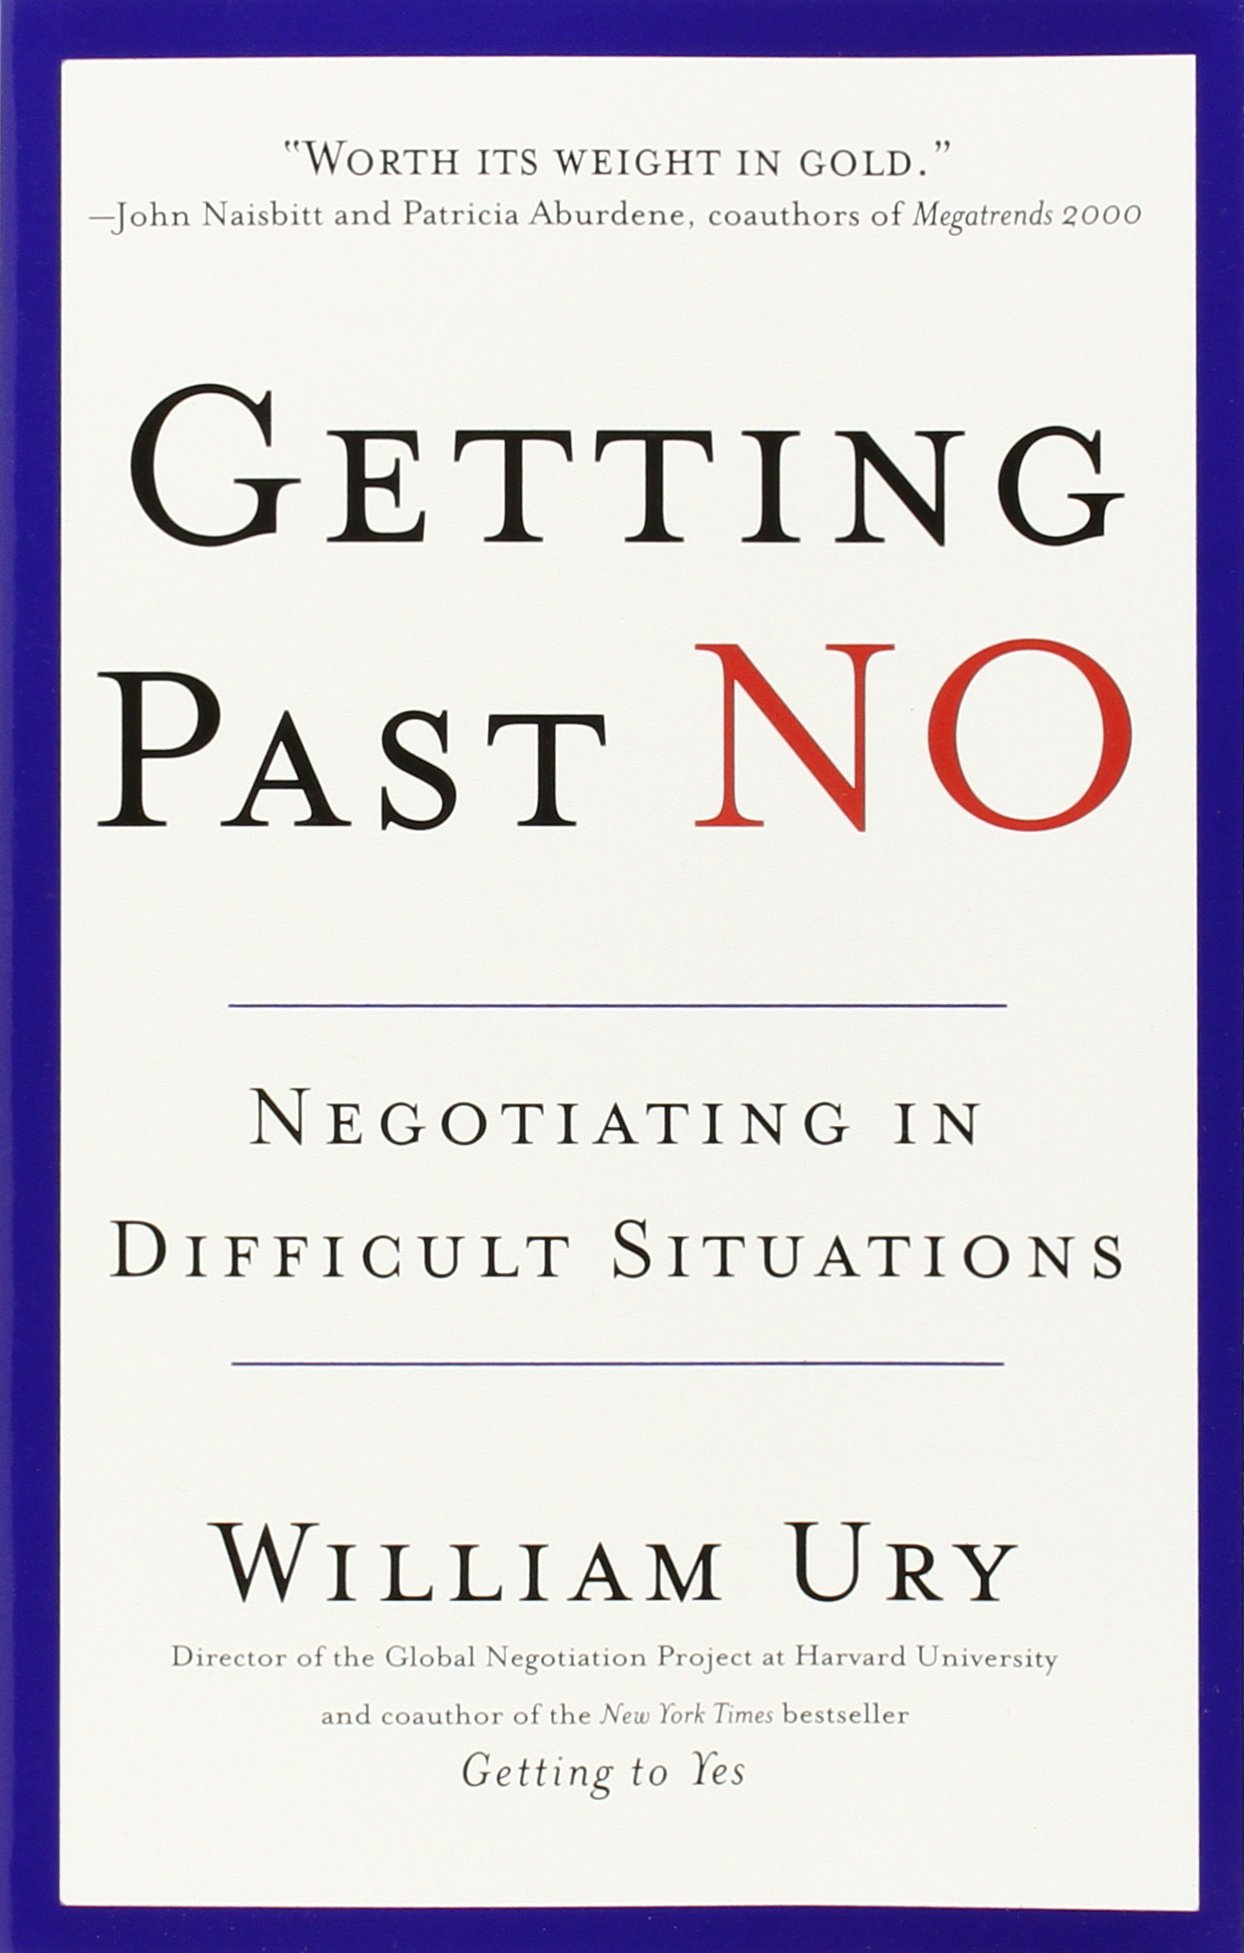 Getting Past No: Negotiating in Difficult Situations ISBN-13 9780553371314